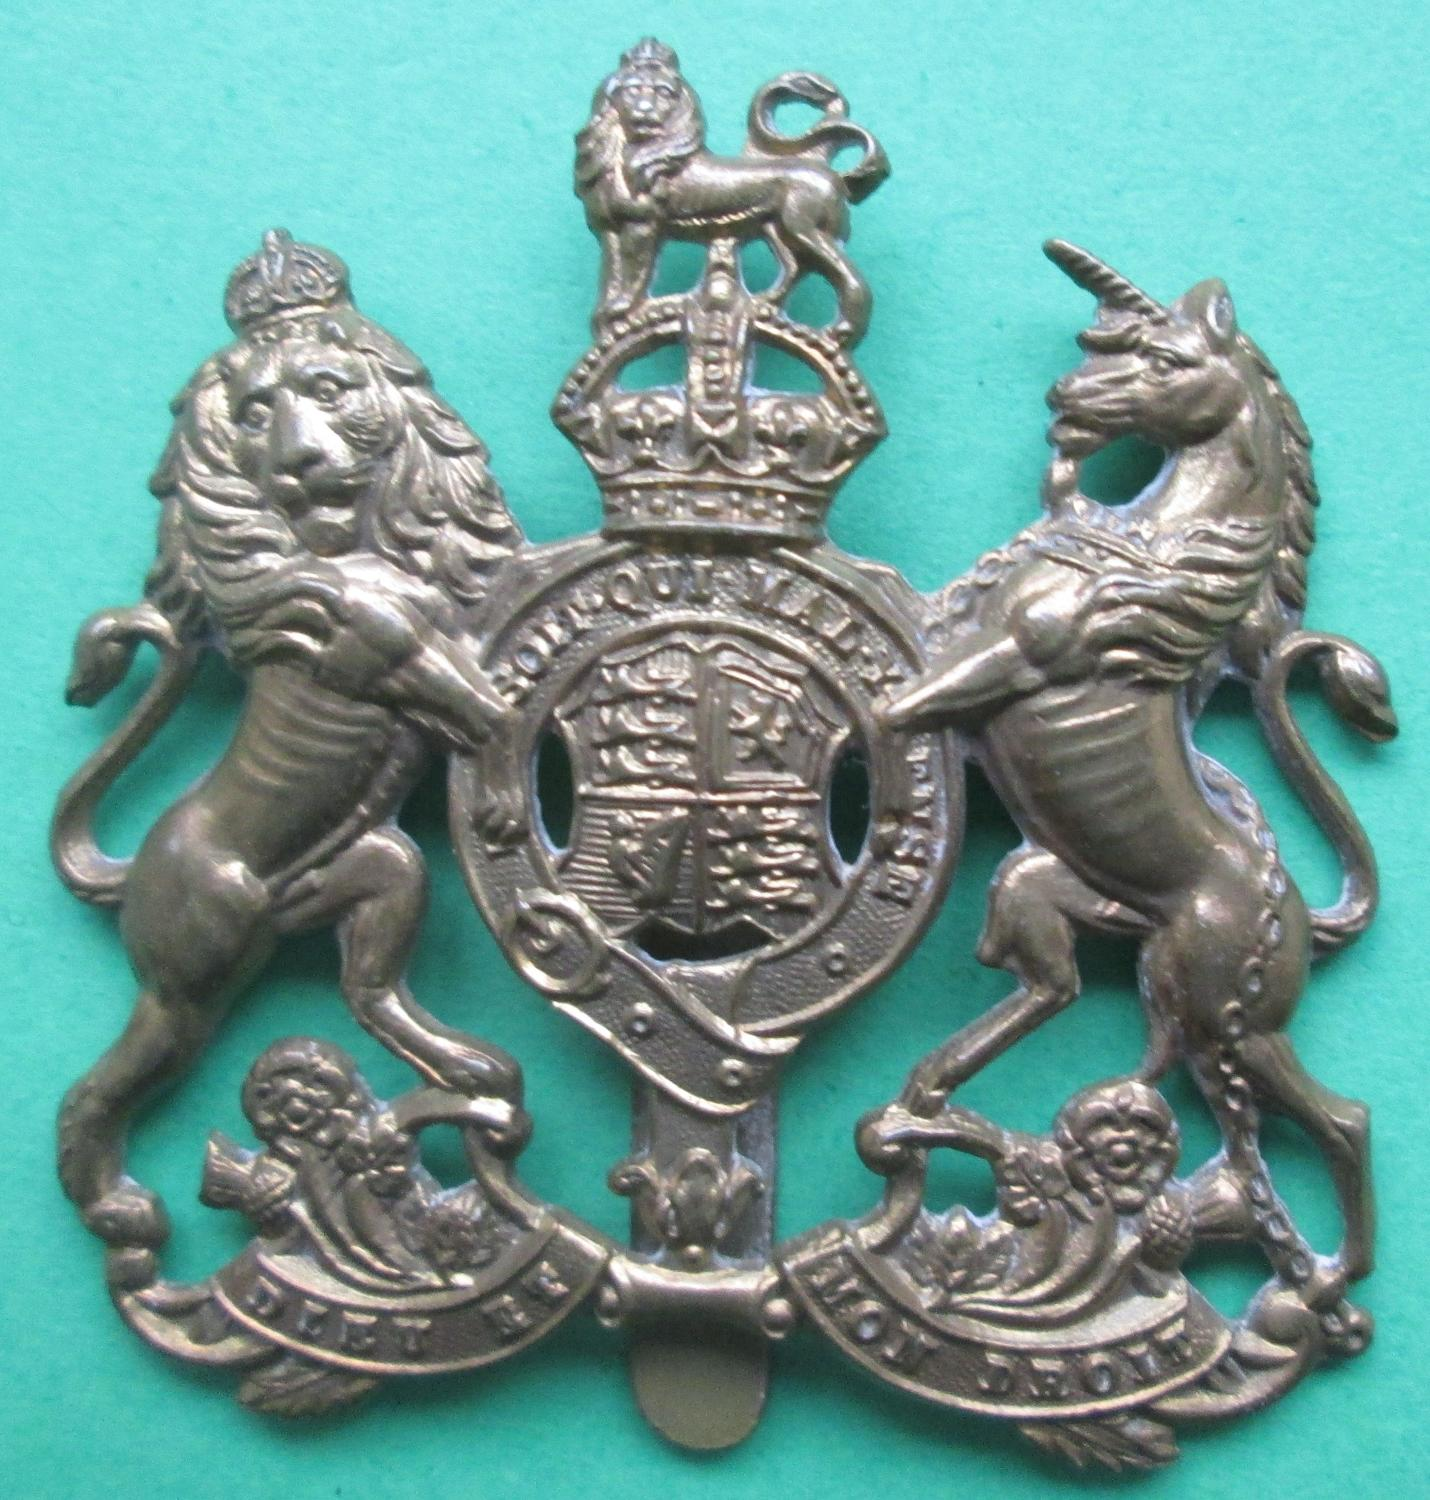 A WWII GENERAL SERVICE CORPS OTHER RANKS CAP BADGE